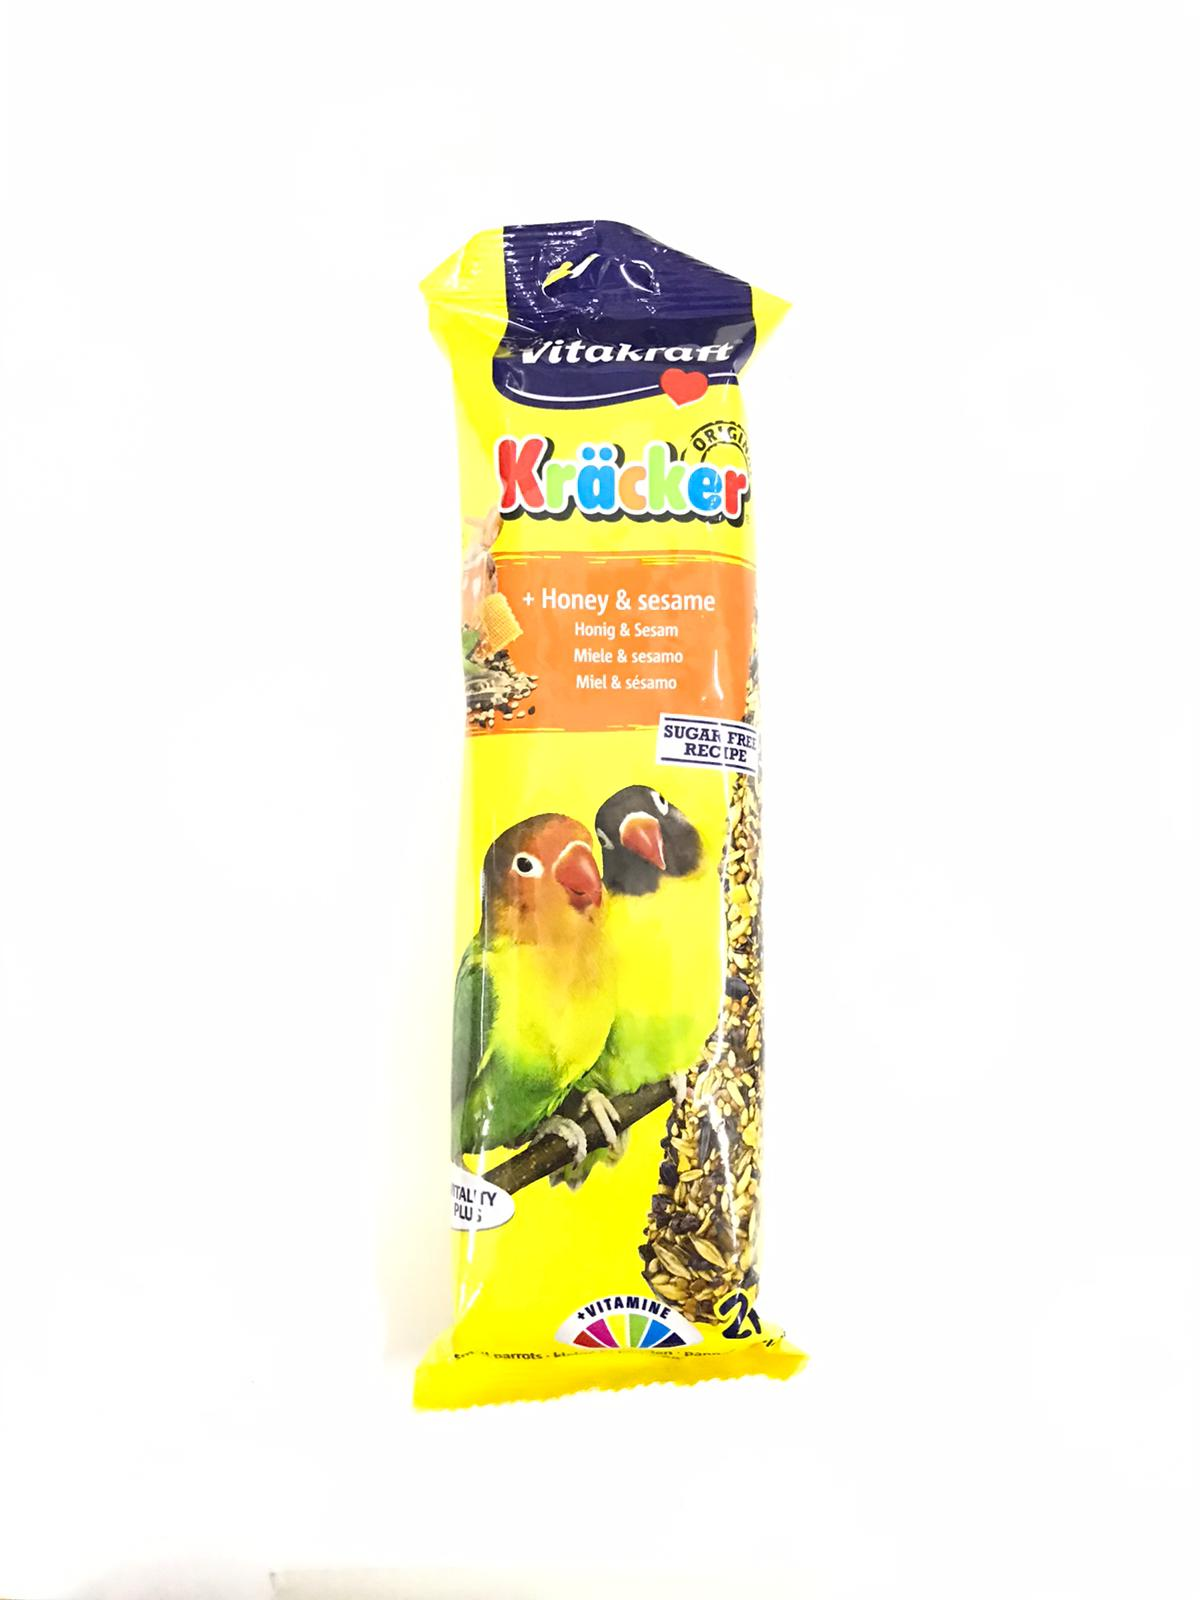 Vitakraft Kracker Honey And Sesame Lovebird (2 Pcs)